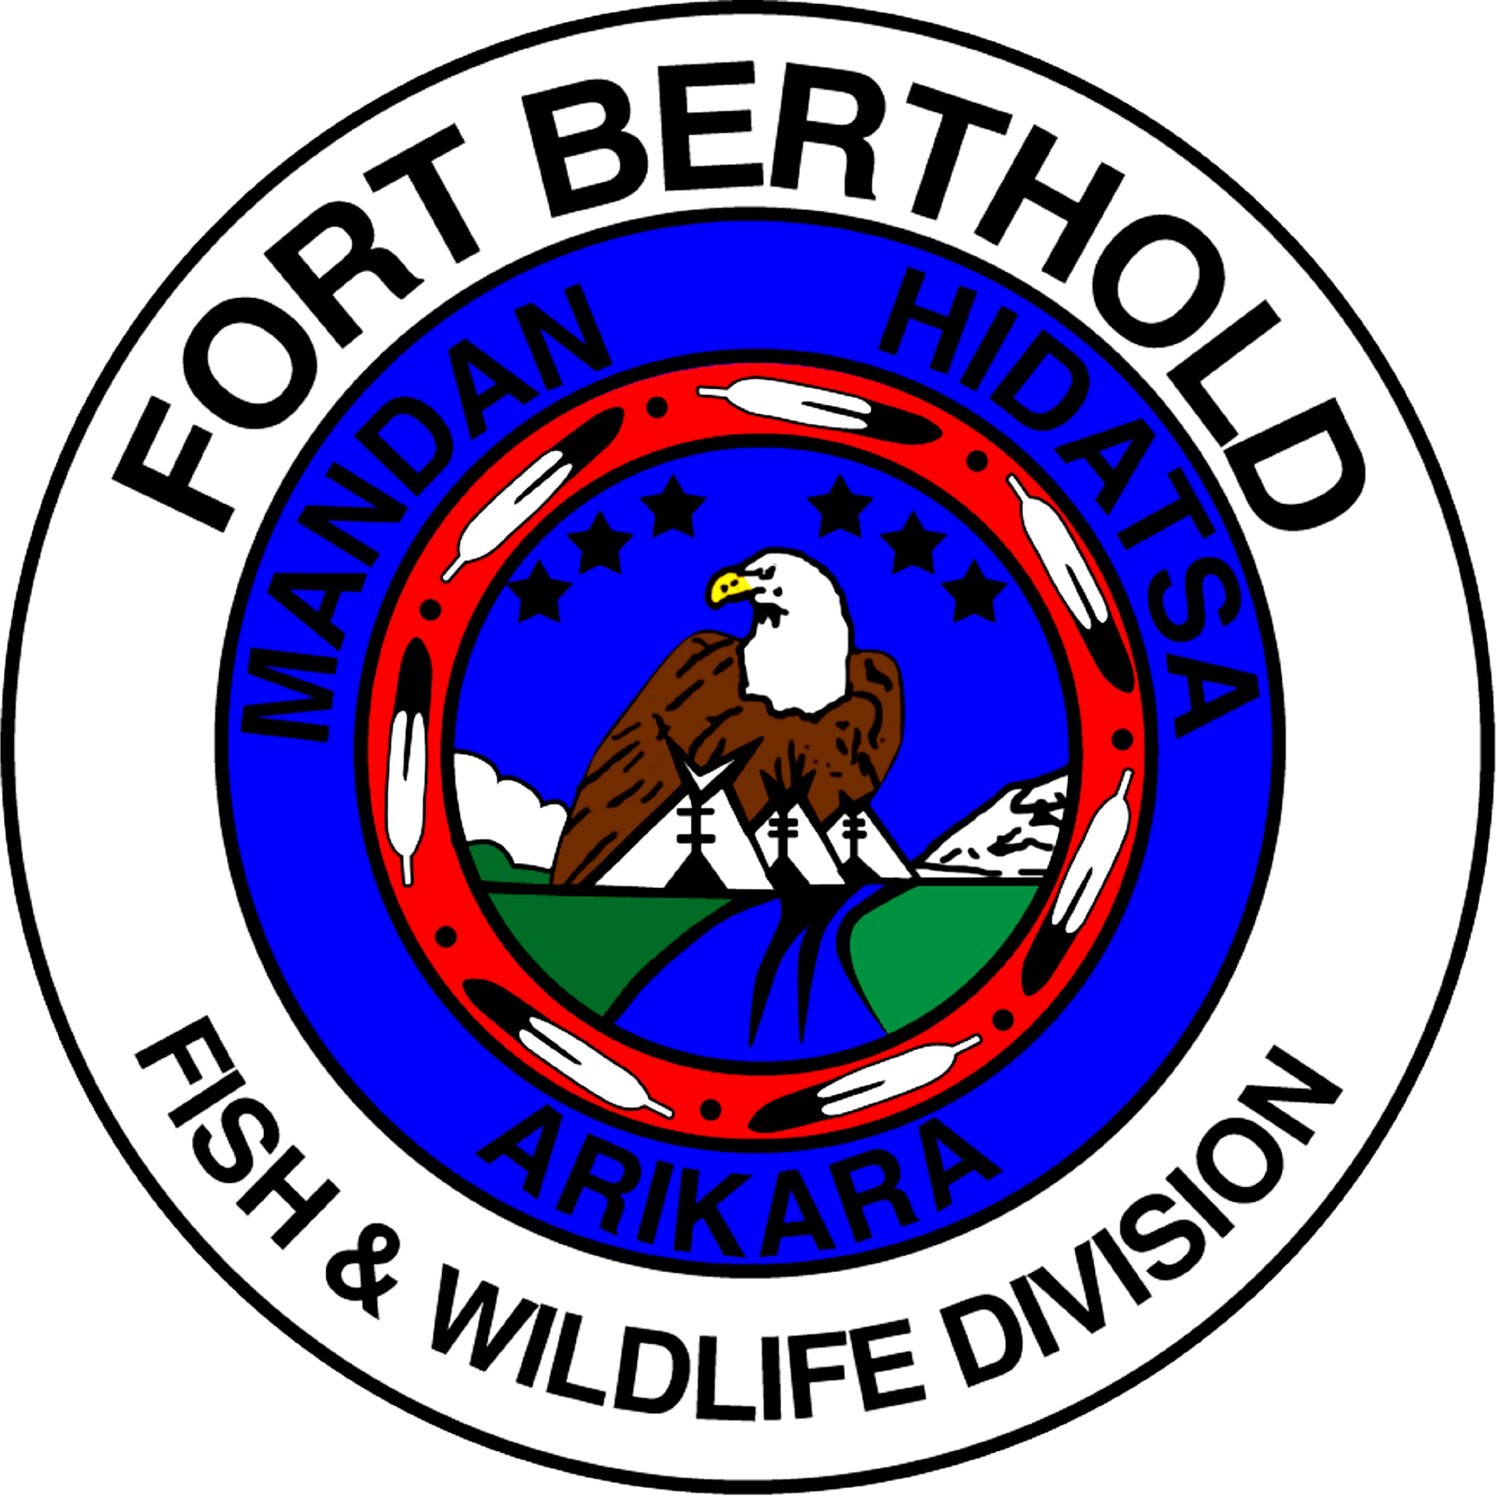 TAT Fish & Wildlife Division